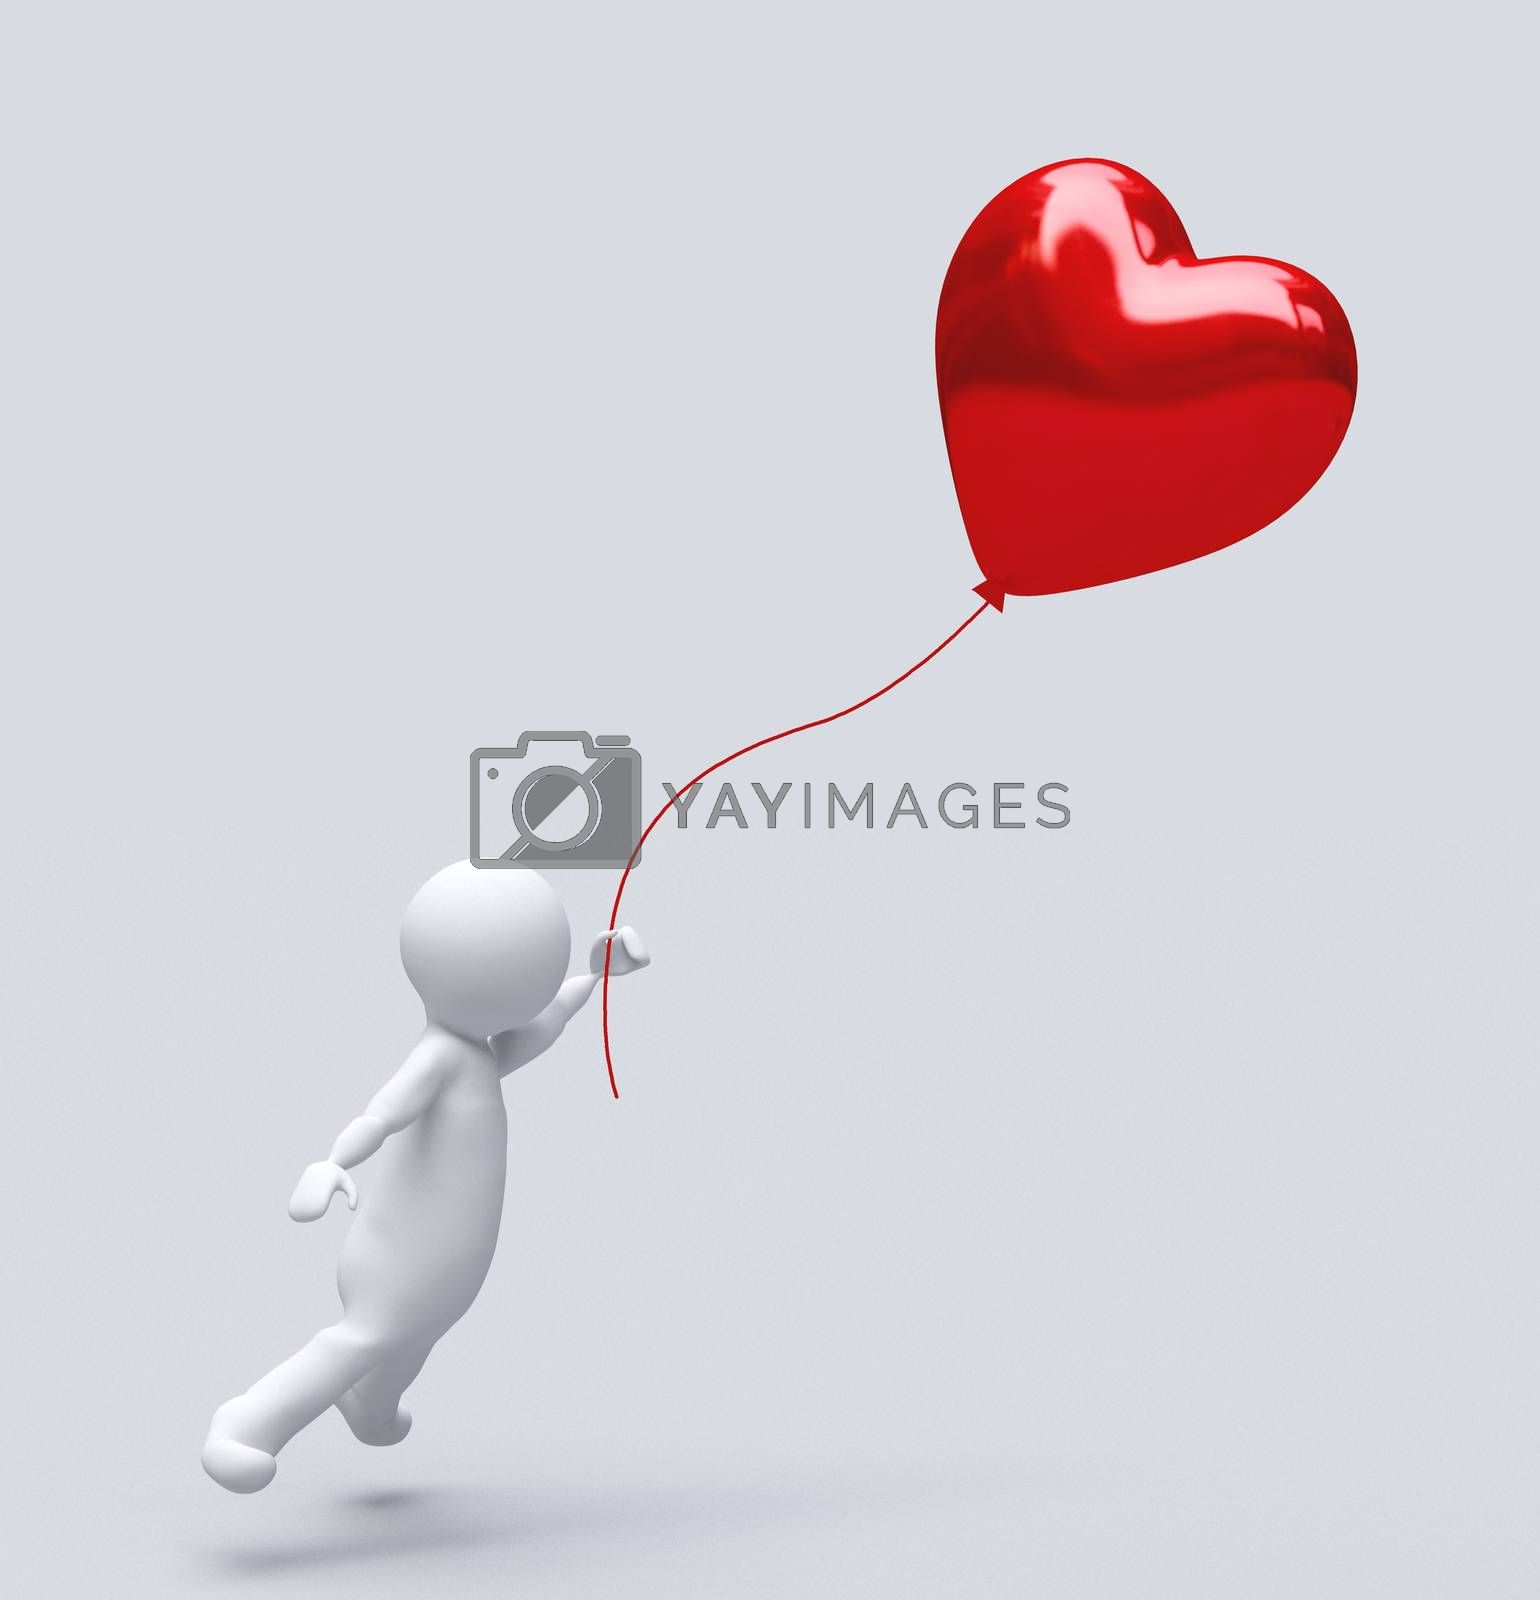 Love Baloon isolated on white, Ballon heart : red valentine love concept, Valentines day. ısolated. by hakankacar2014